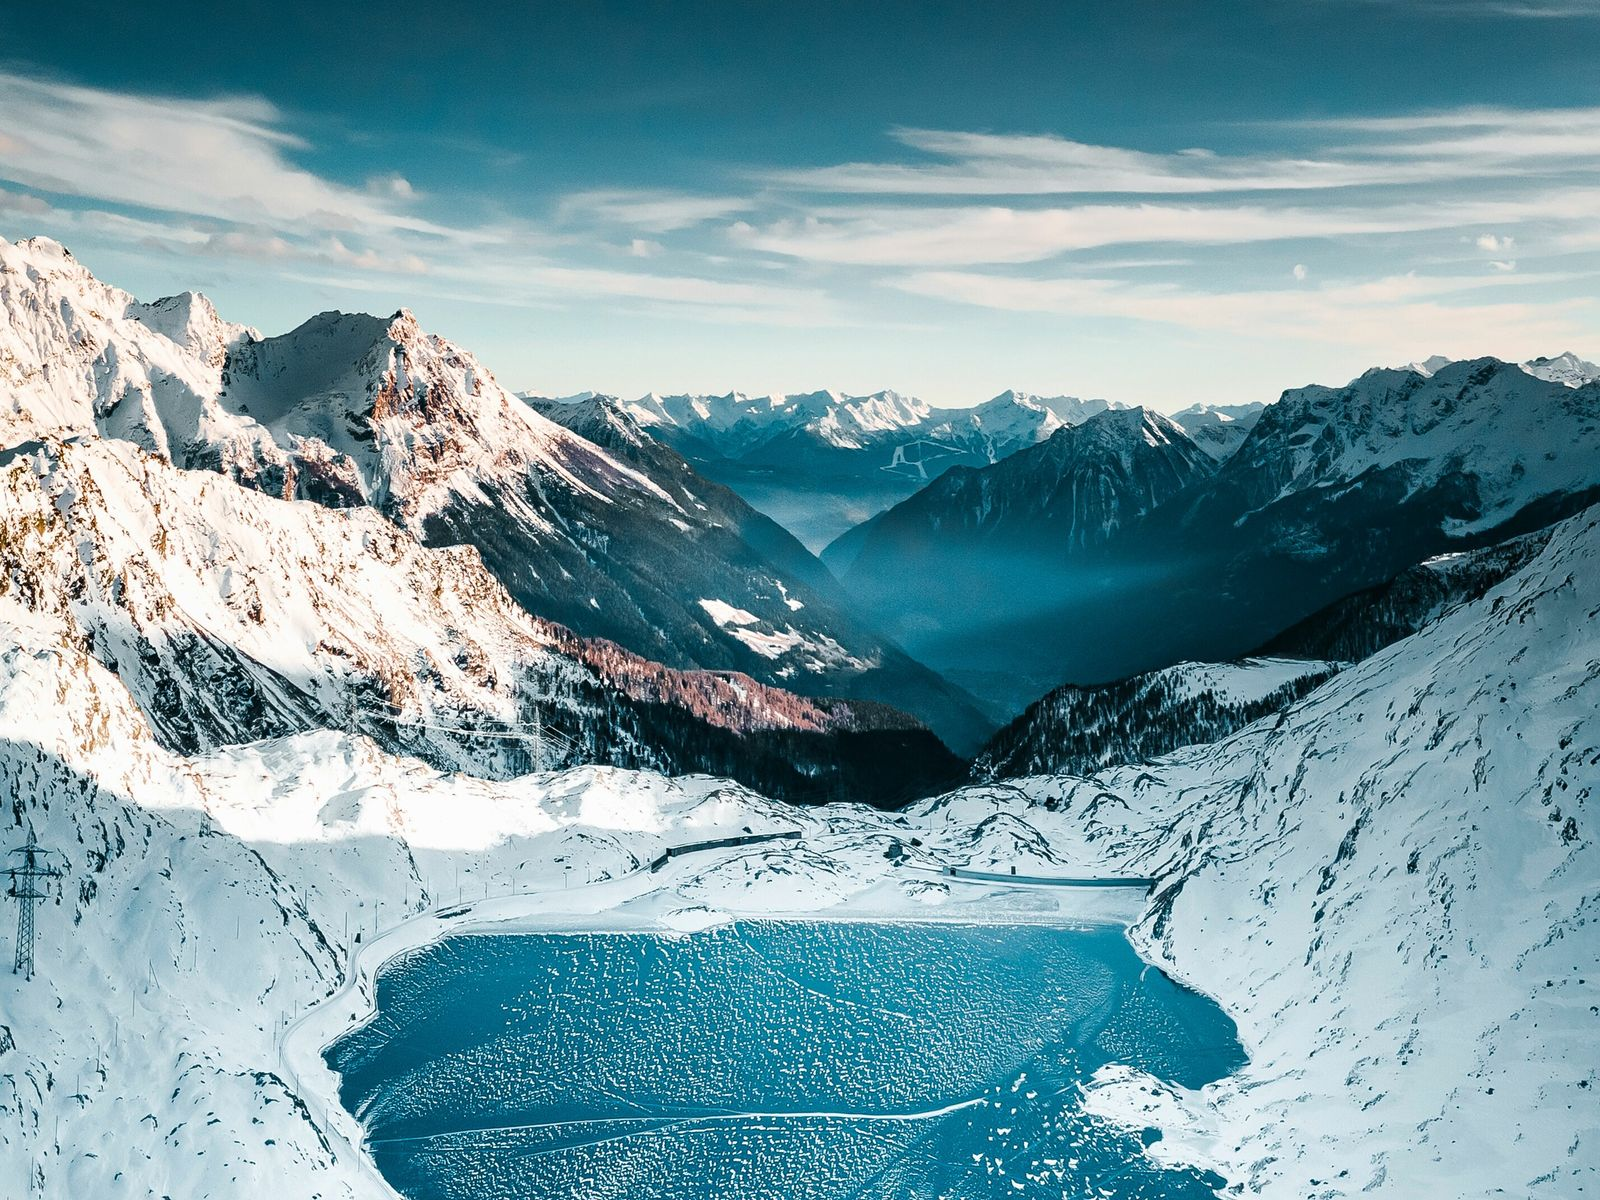 The resort of St Moritz in Switzerland is home to the dramatic Engadine Valley.